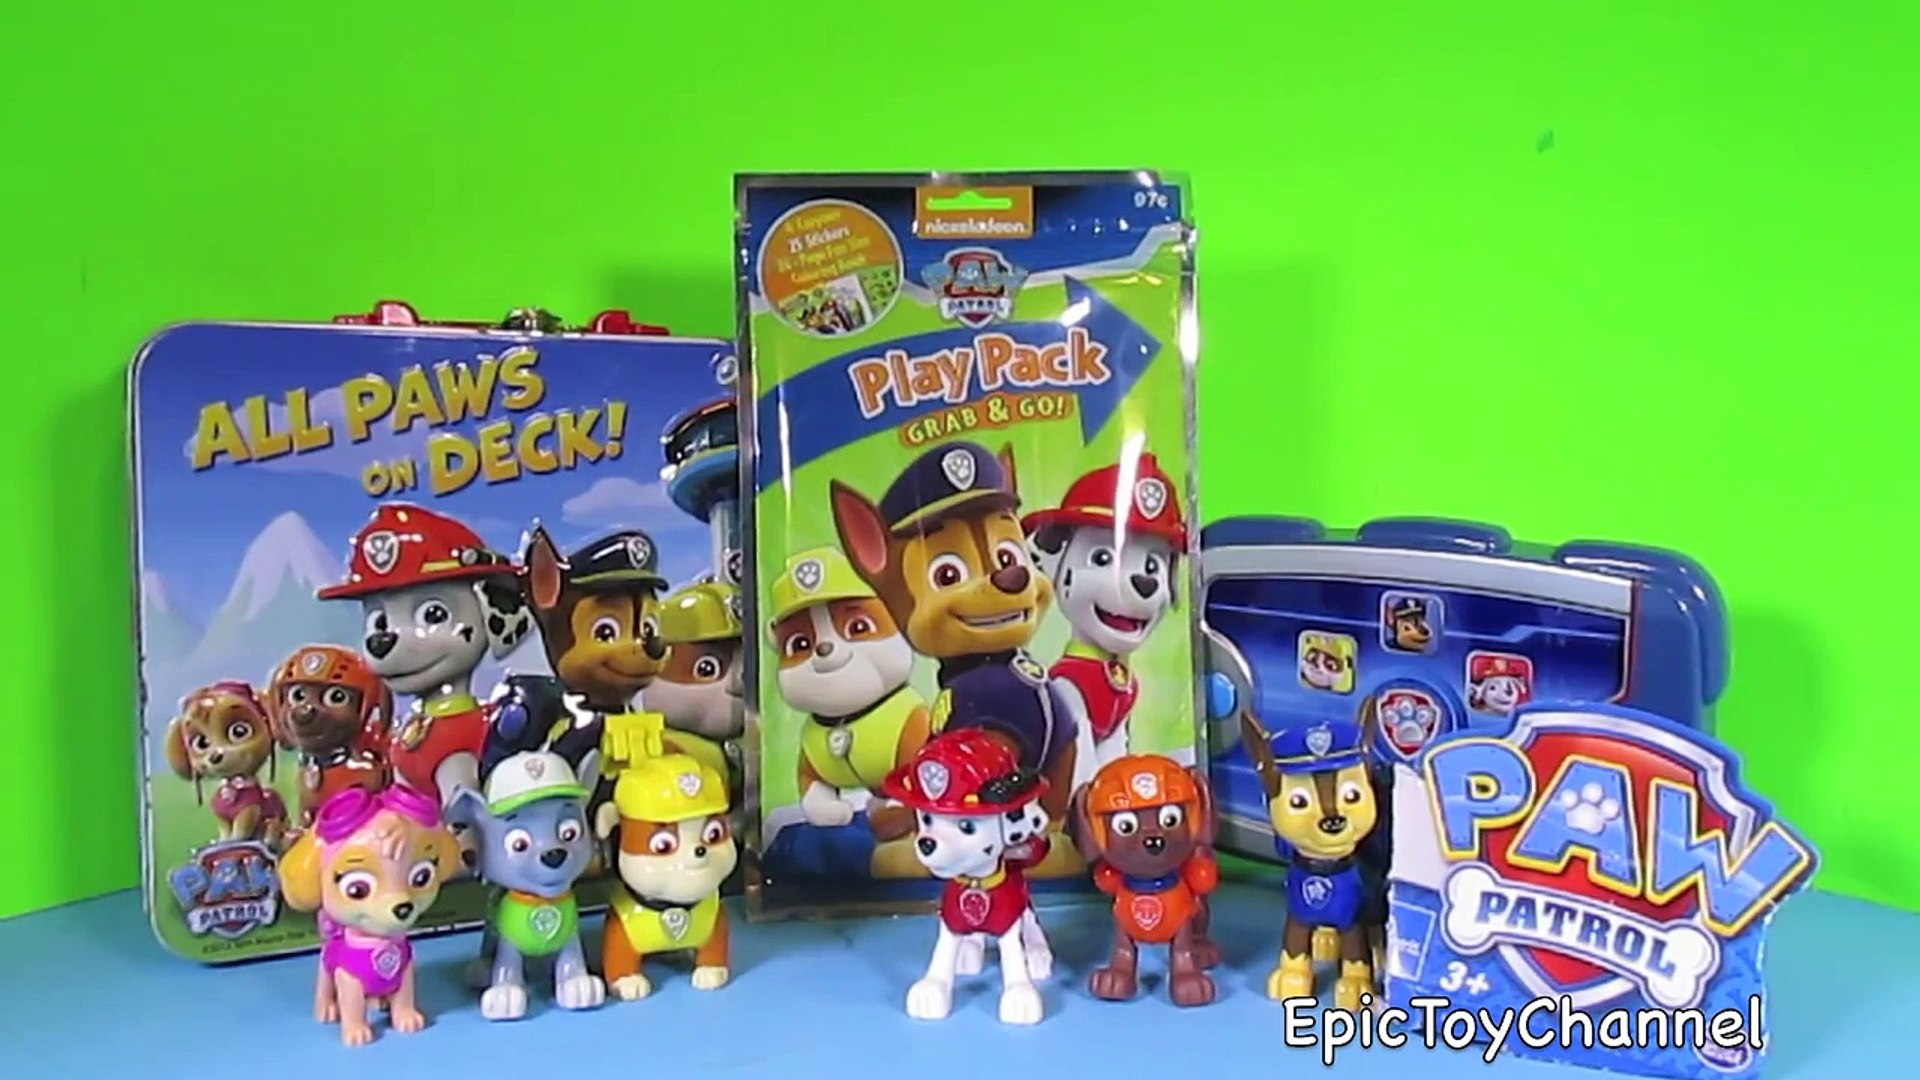 PAW PATROL Activities + Paw Patrol Toys a Toy Unboxing & Parody Video by  EpicToyChannel